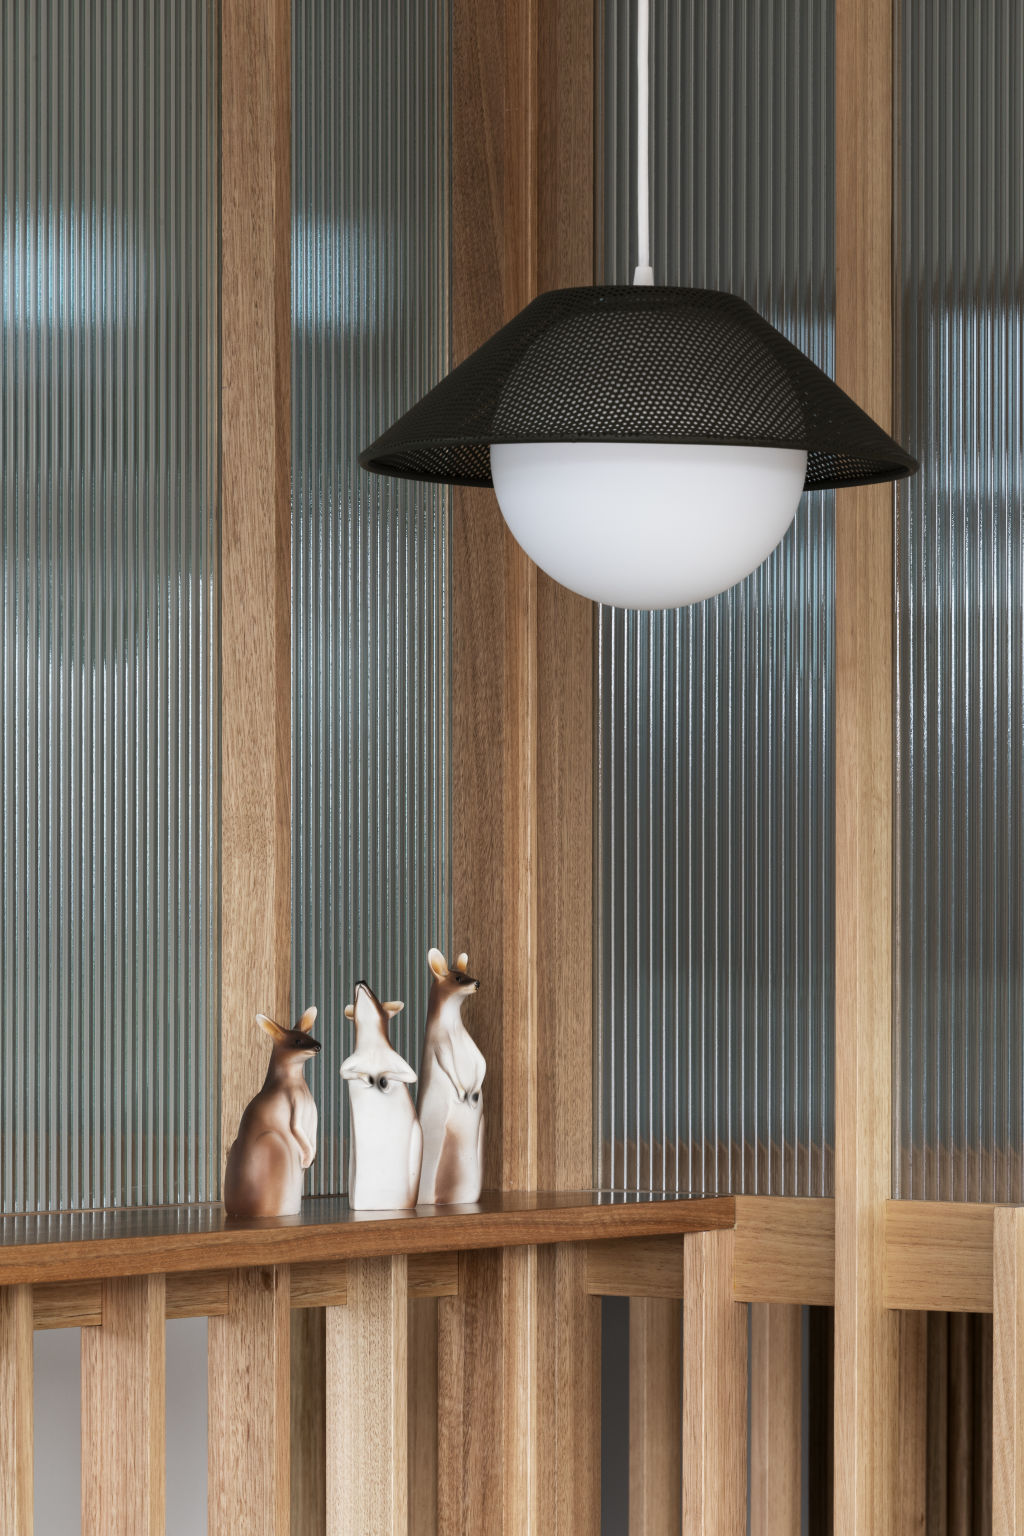 Akoya 14 pendant light by Rich Brilliant Willing from Koda Lighting. Styling: Ruth Welsby.